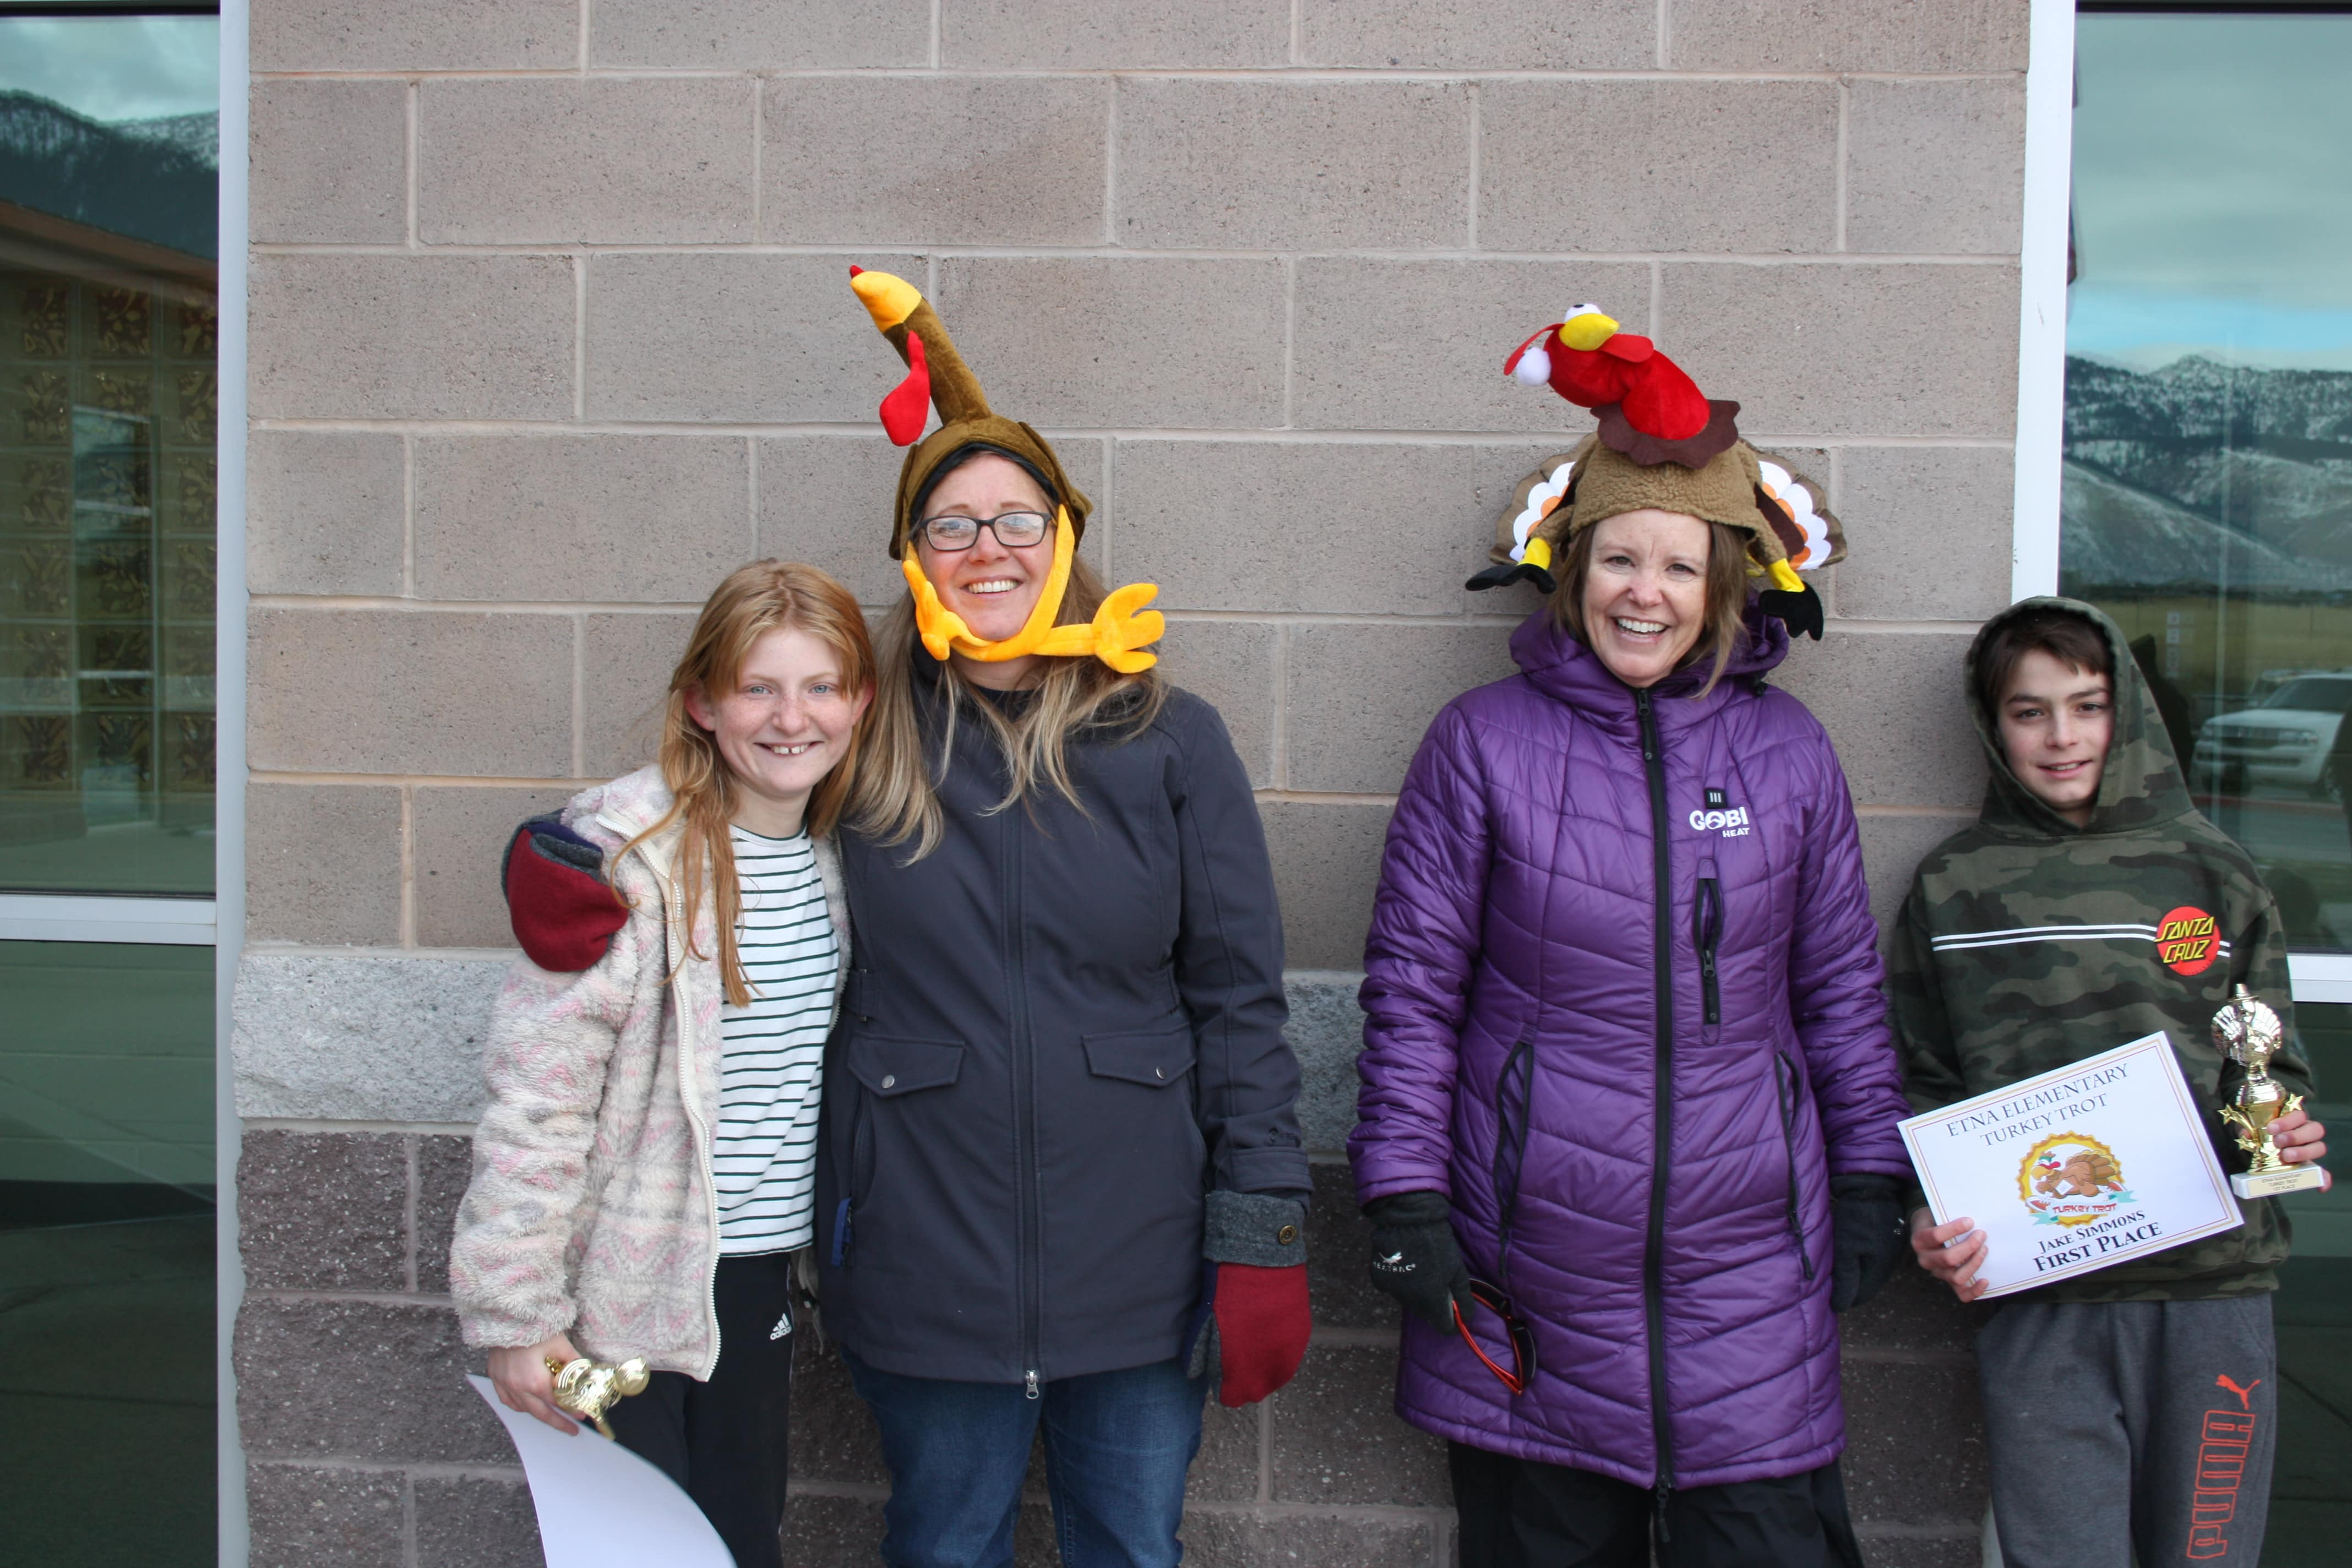 Staff and students at Turkey Trot 2020